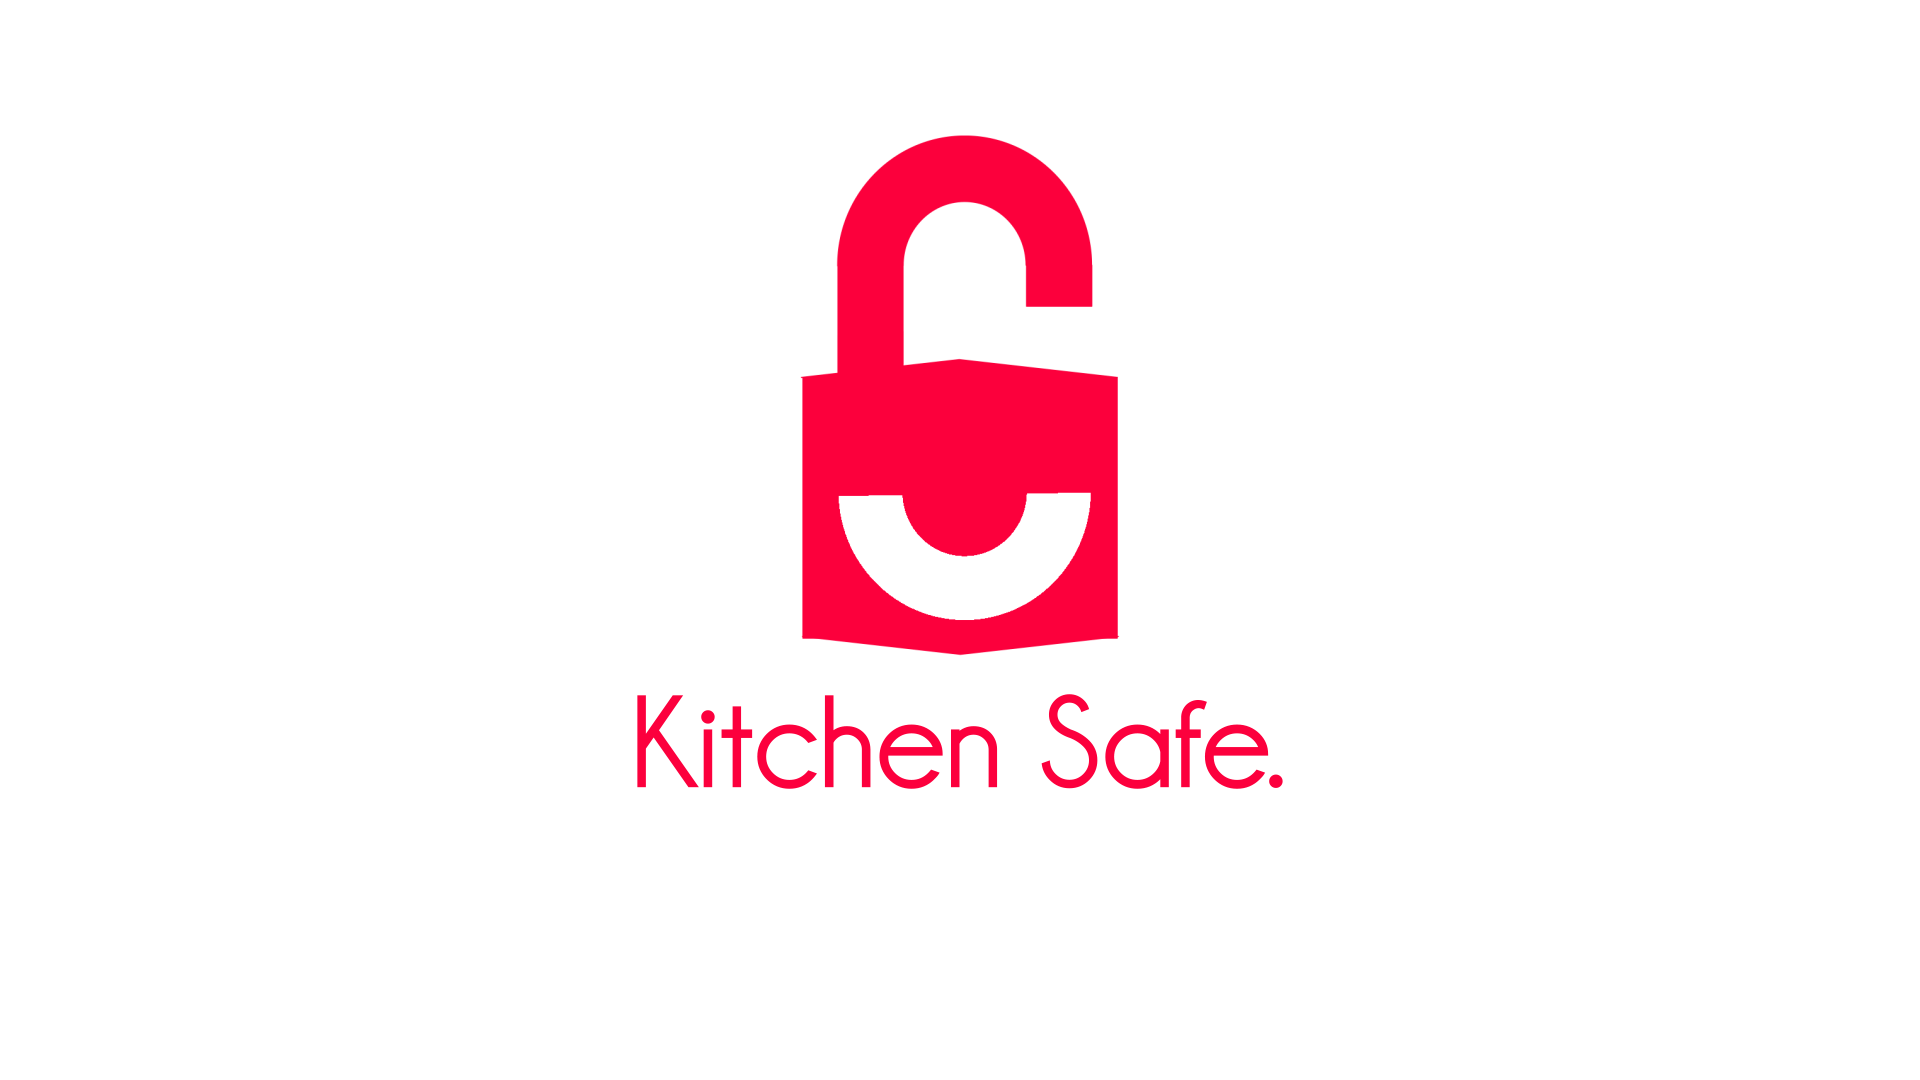 It Took 1 Week To Create The Advert For Kitchen Safe, Which Uses The  Wording To Emphasize What Is Being Spoken By The Narrator, And Utilizes  Only The Colors ...